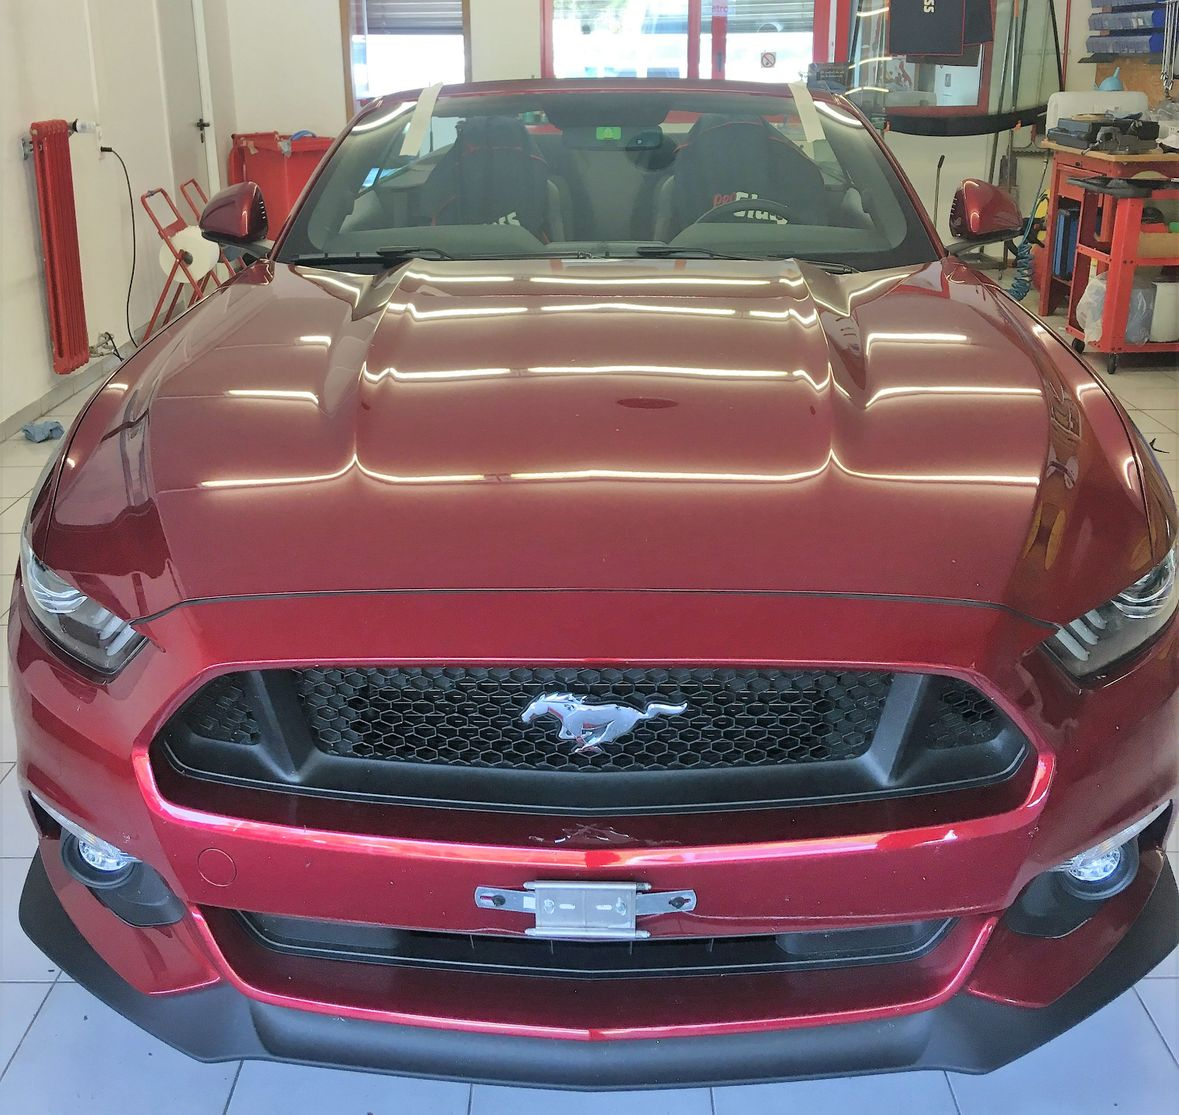 Ford Mustang Glasspartner